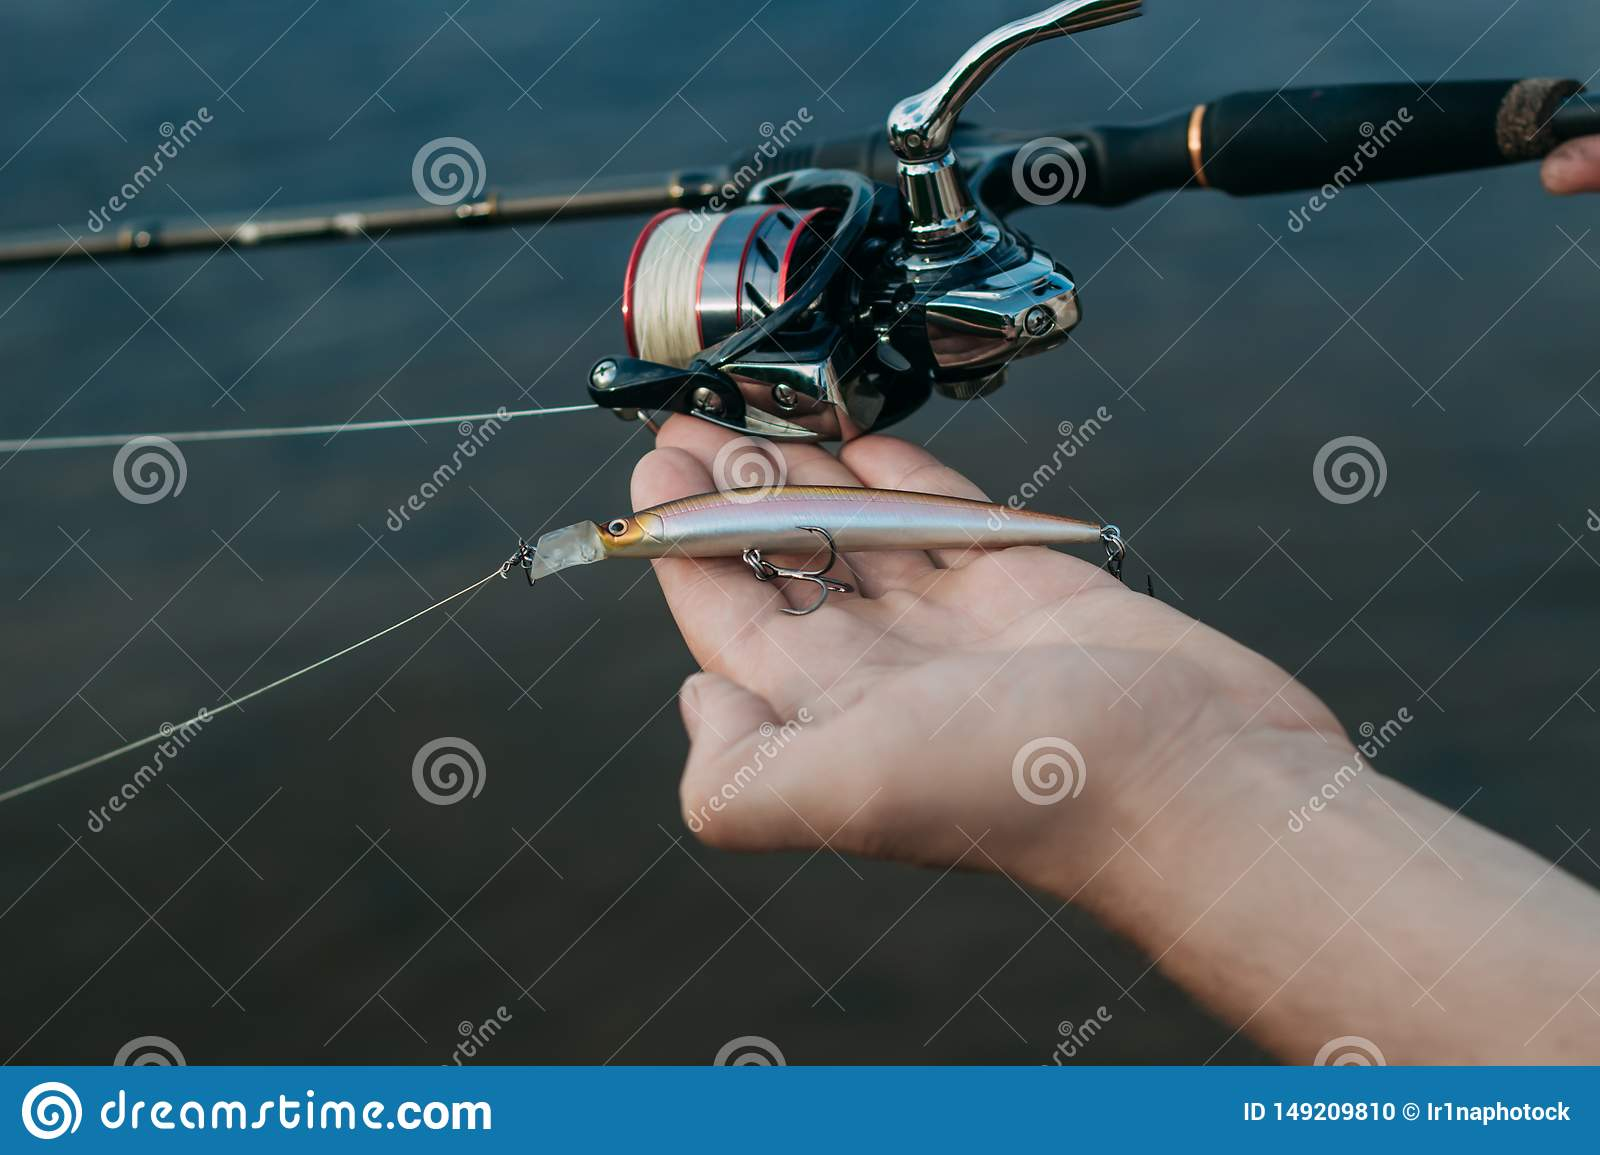 Fishing fish from shore with a stick, close up